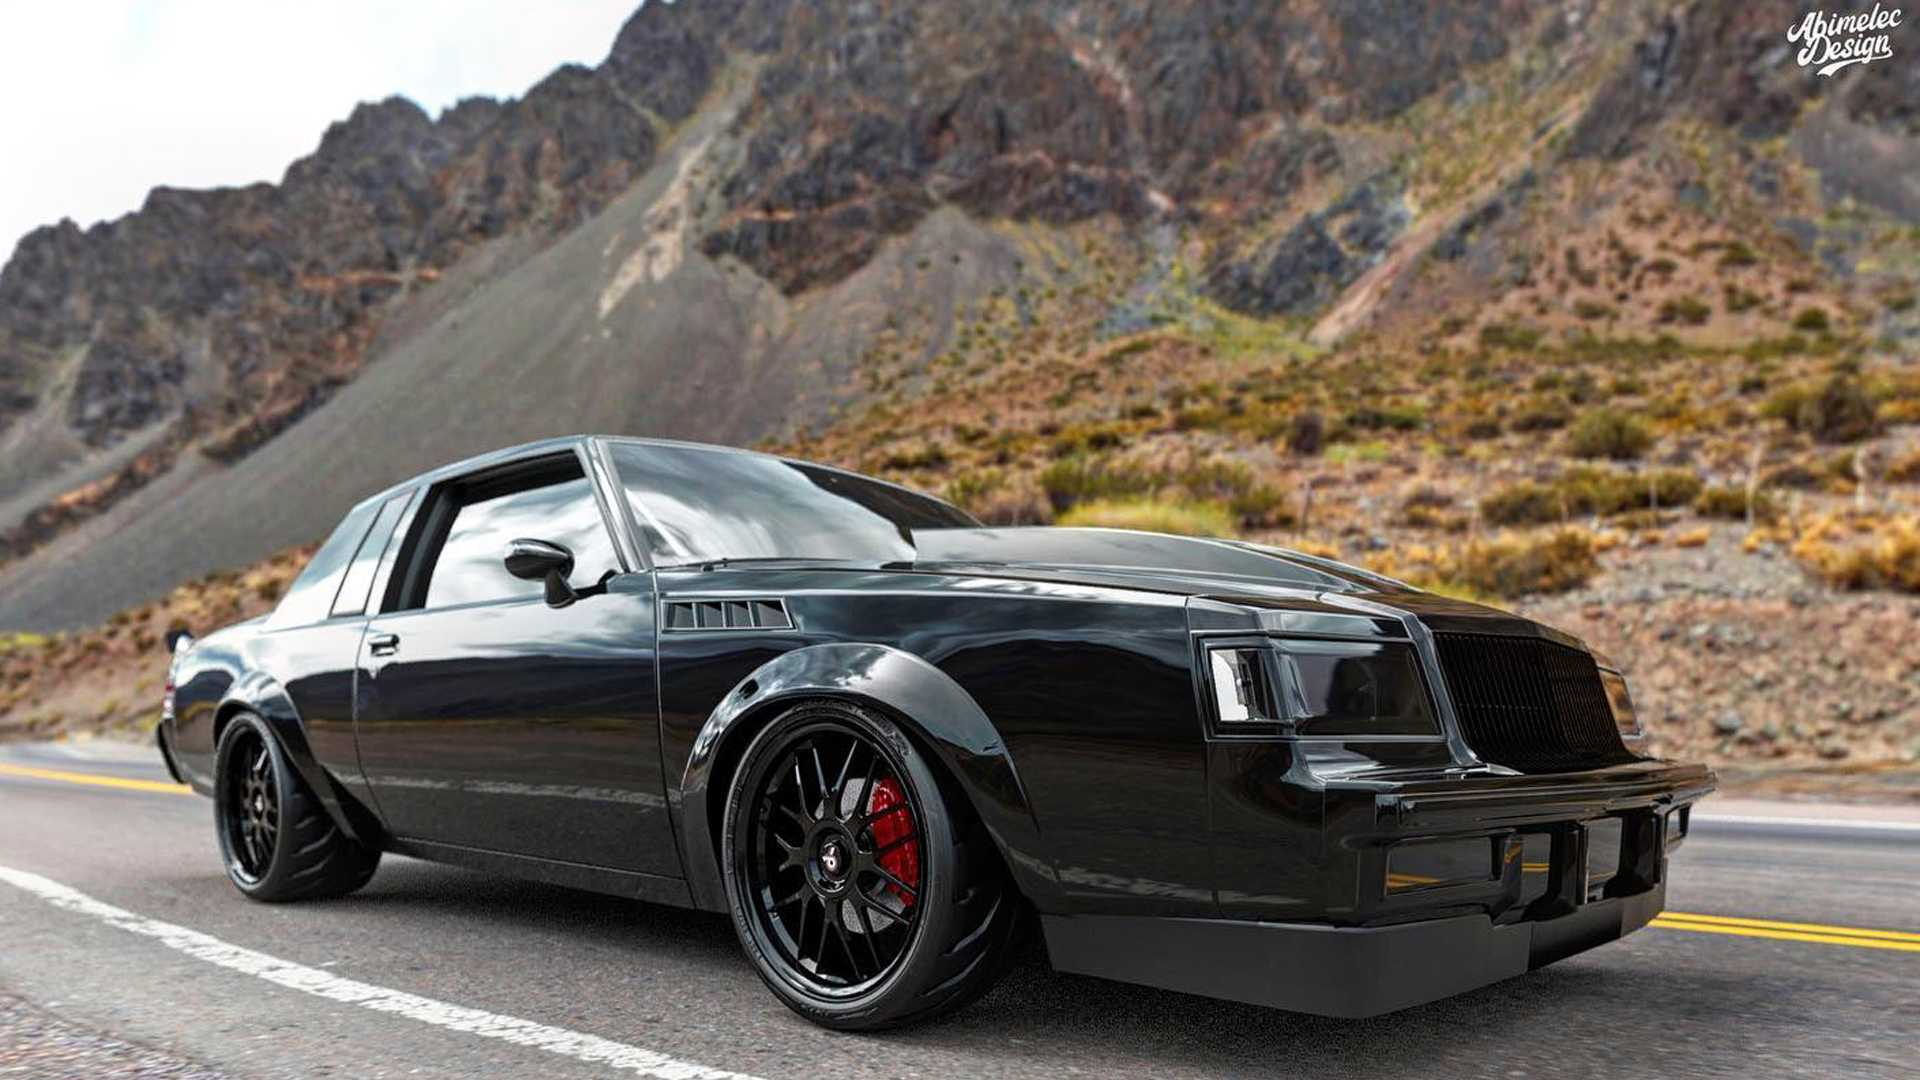 Hellcat-Swapped Buick Grand National Rendering Previews A Real Car